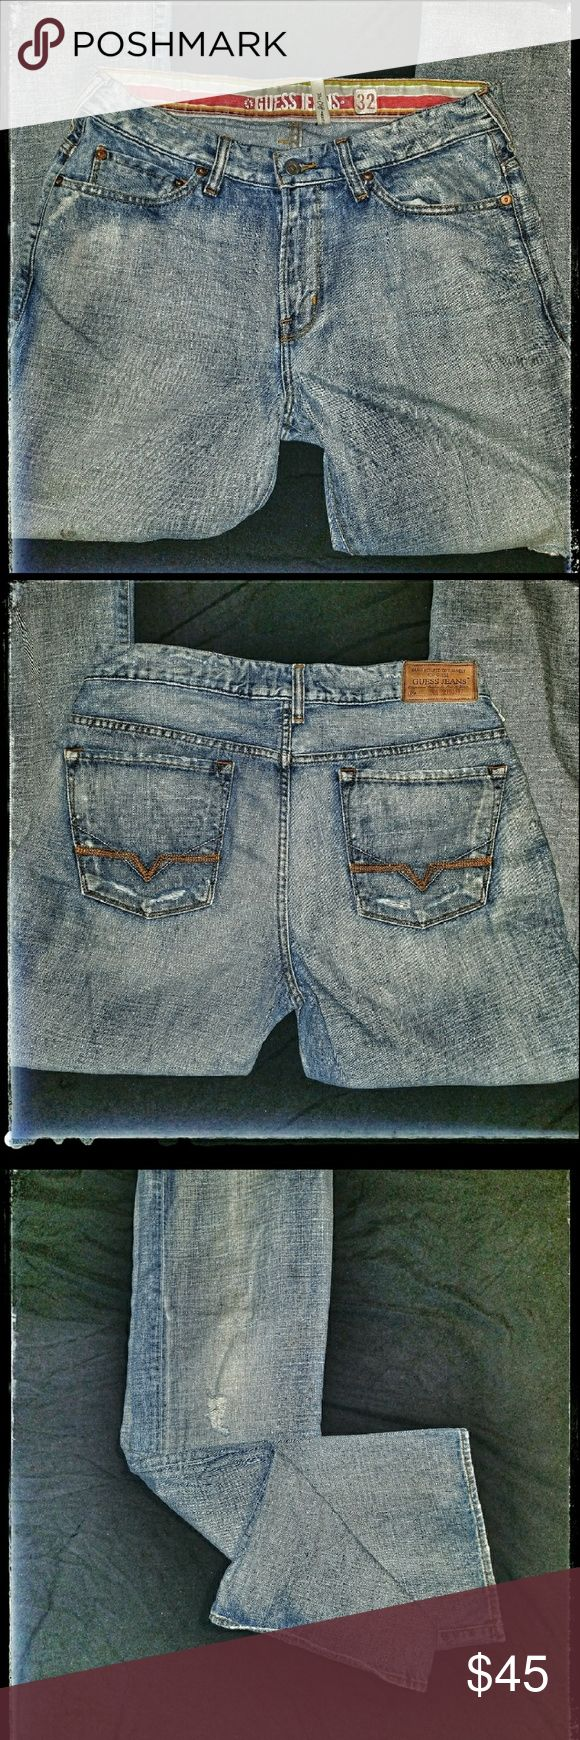 GUESS MEN'S 'CLIFF' BOOTCUT JEANS Gently Used, No Signs Of Wear Boot Cut 32x33 Light Wash Distressed Look Zip Fly Guess Jeans Bootcut